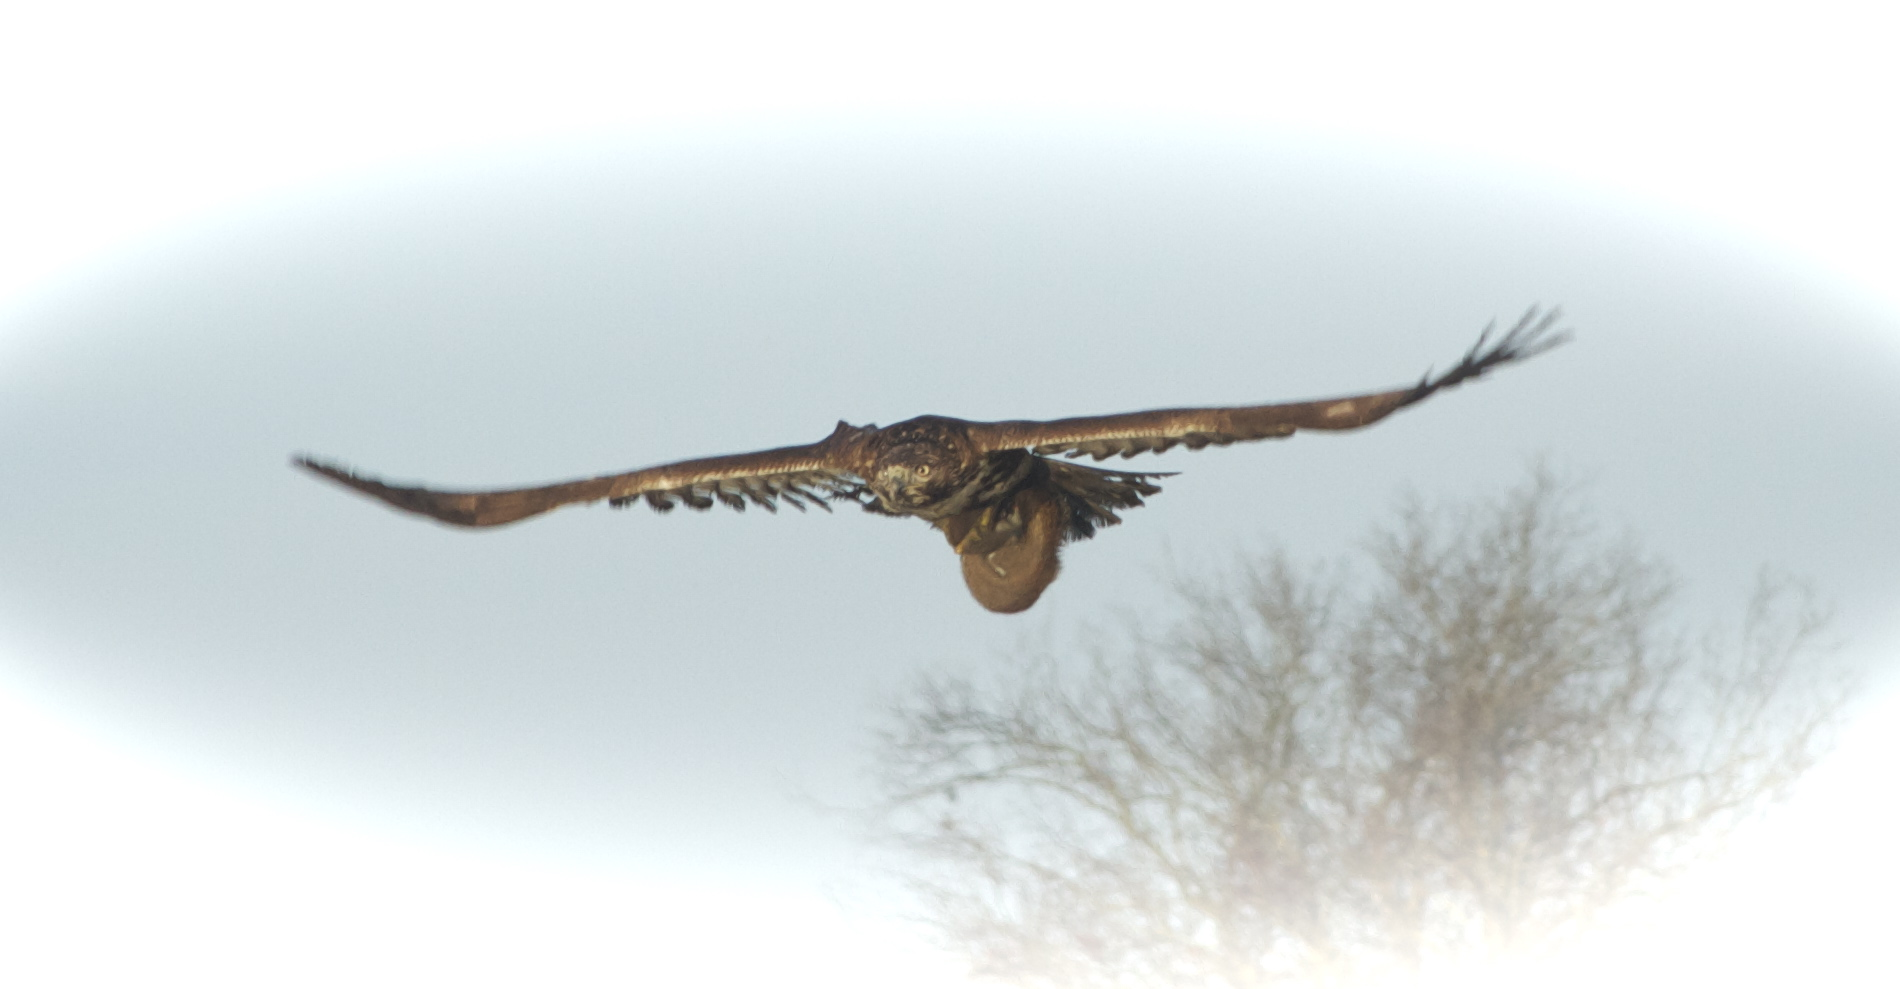 The Hawk and prey swoop quickly by.